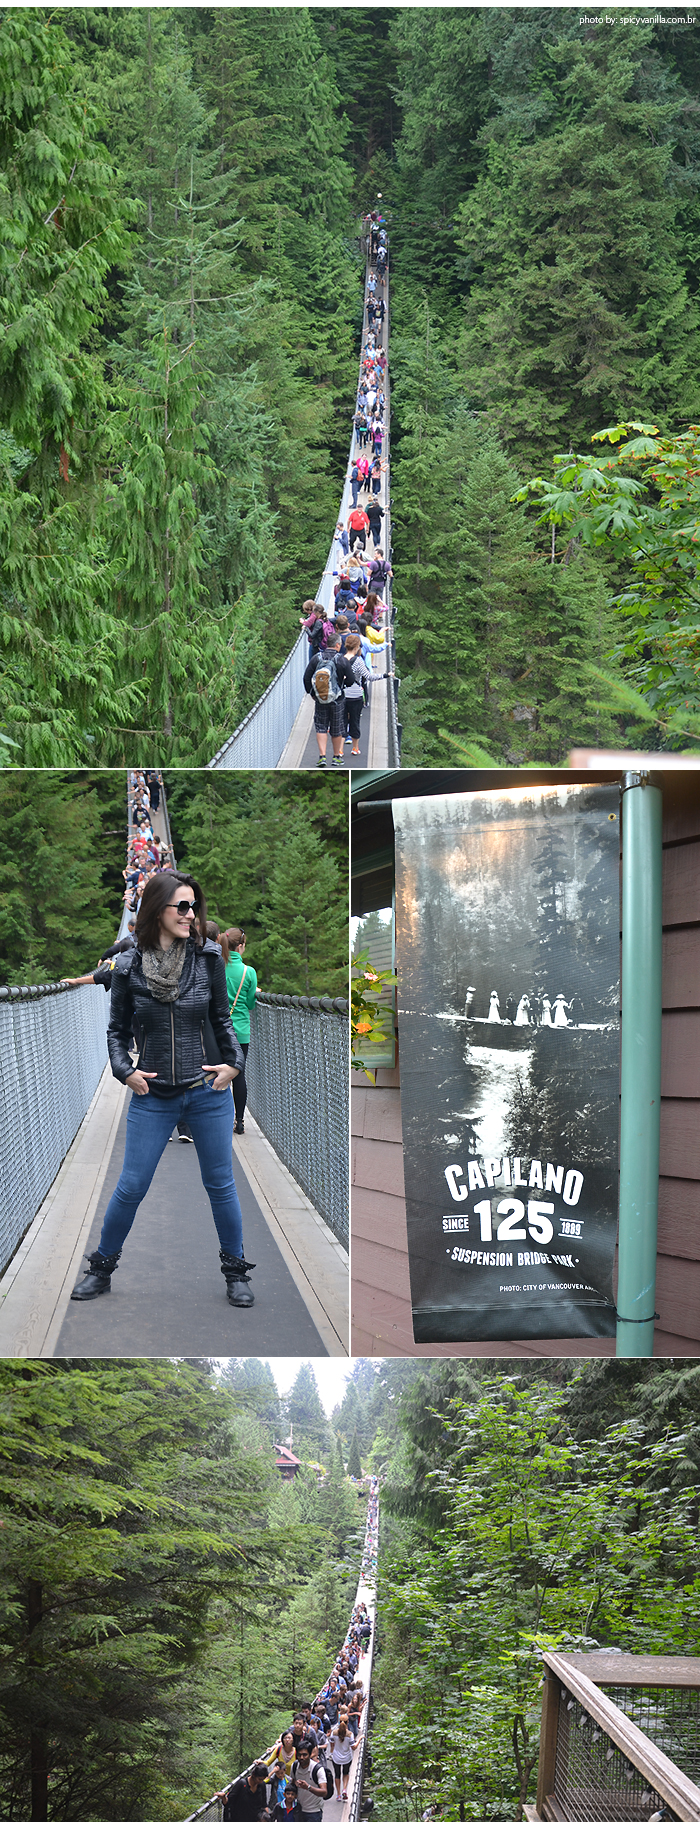 Capilano_Suspension_Bridge_ponte